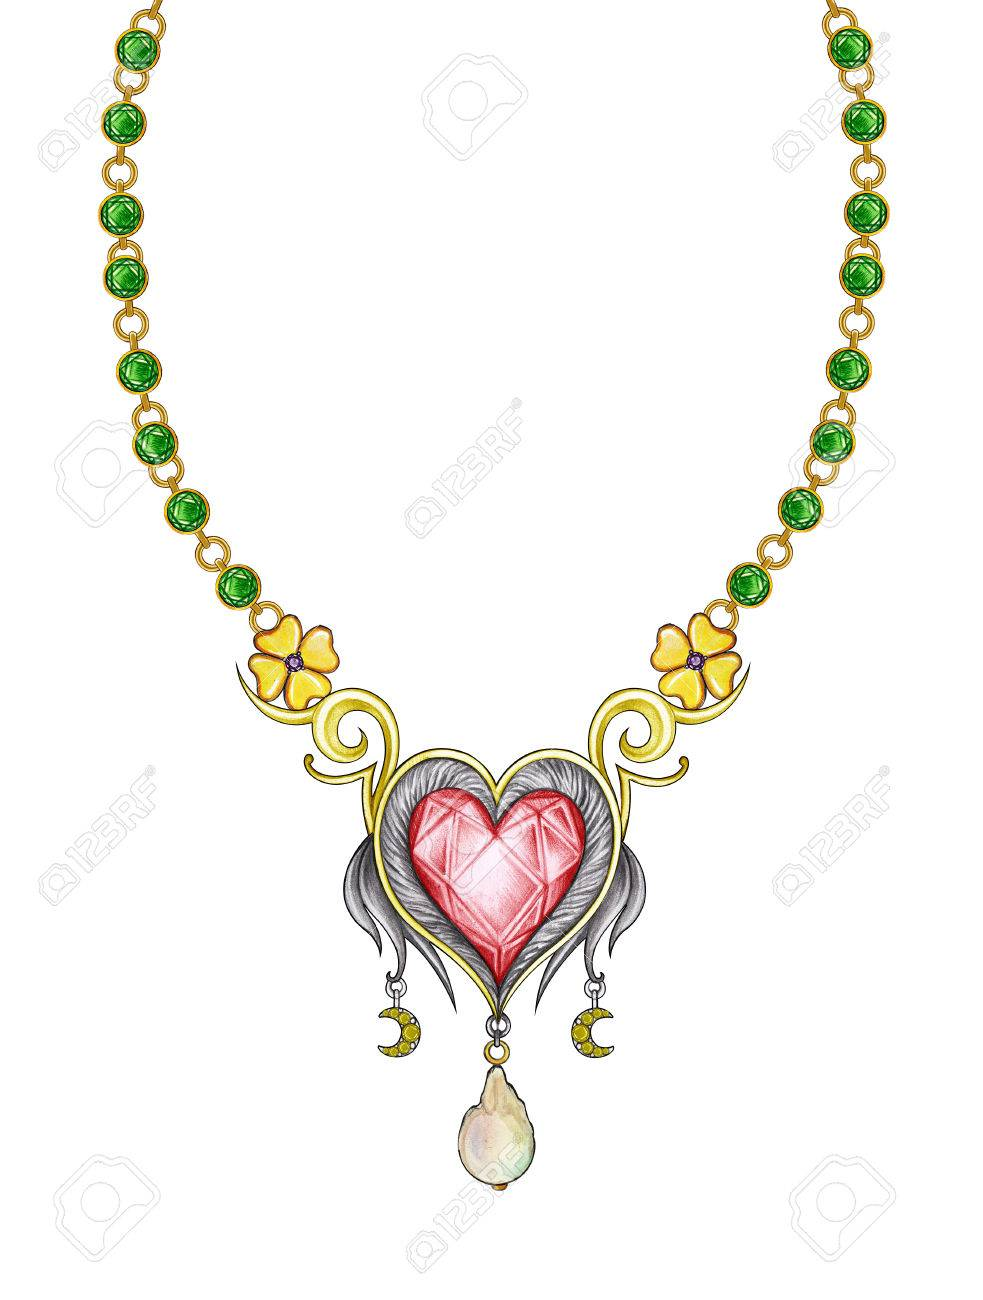 Jewelry design heart necklace hand pencil drawing and painting on paper stock photo